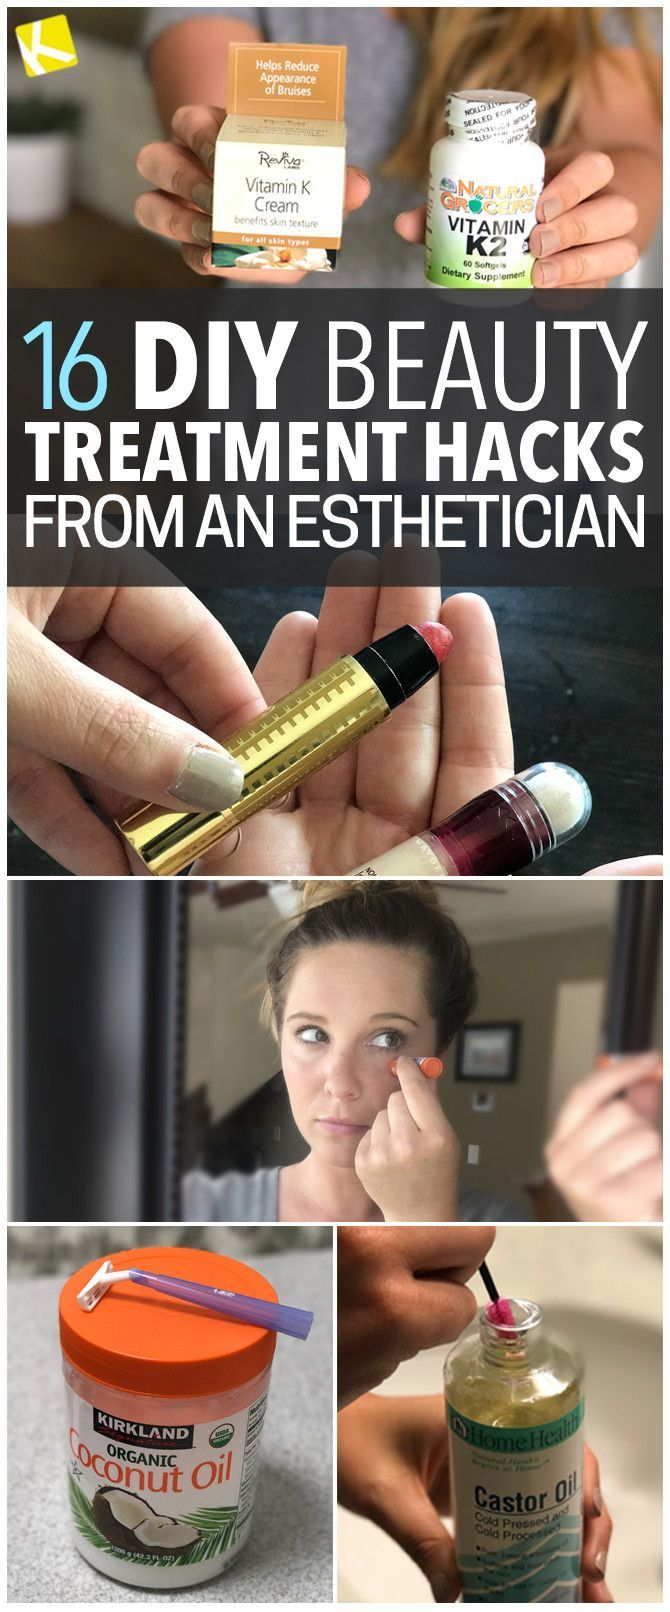 16 DIY Beauty Treatment Hacks from an Esthetician